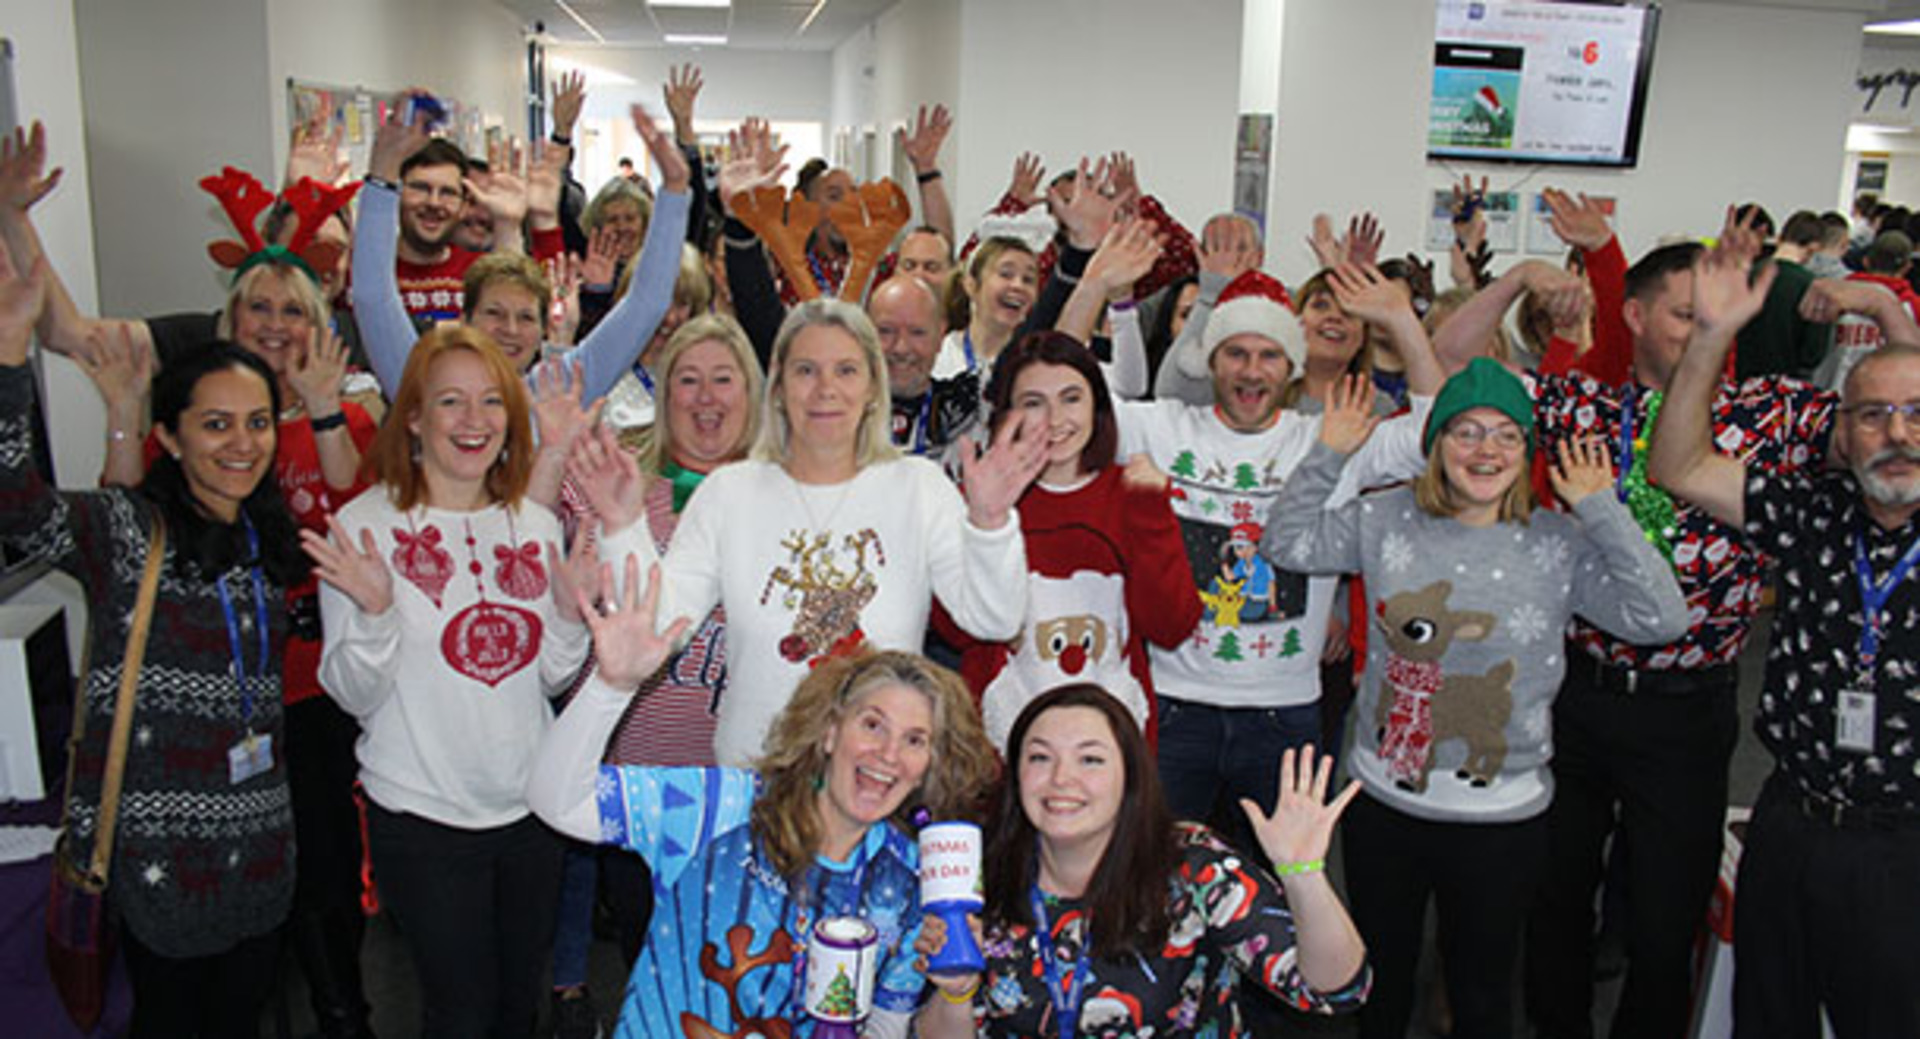 Eastleigh College Staff get in the festive spirit for Christmas Jumper Day in aid of Child Bereavement UK